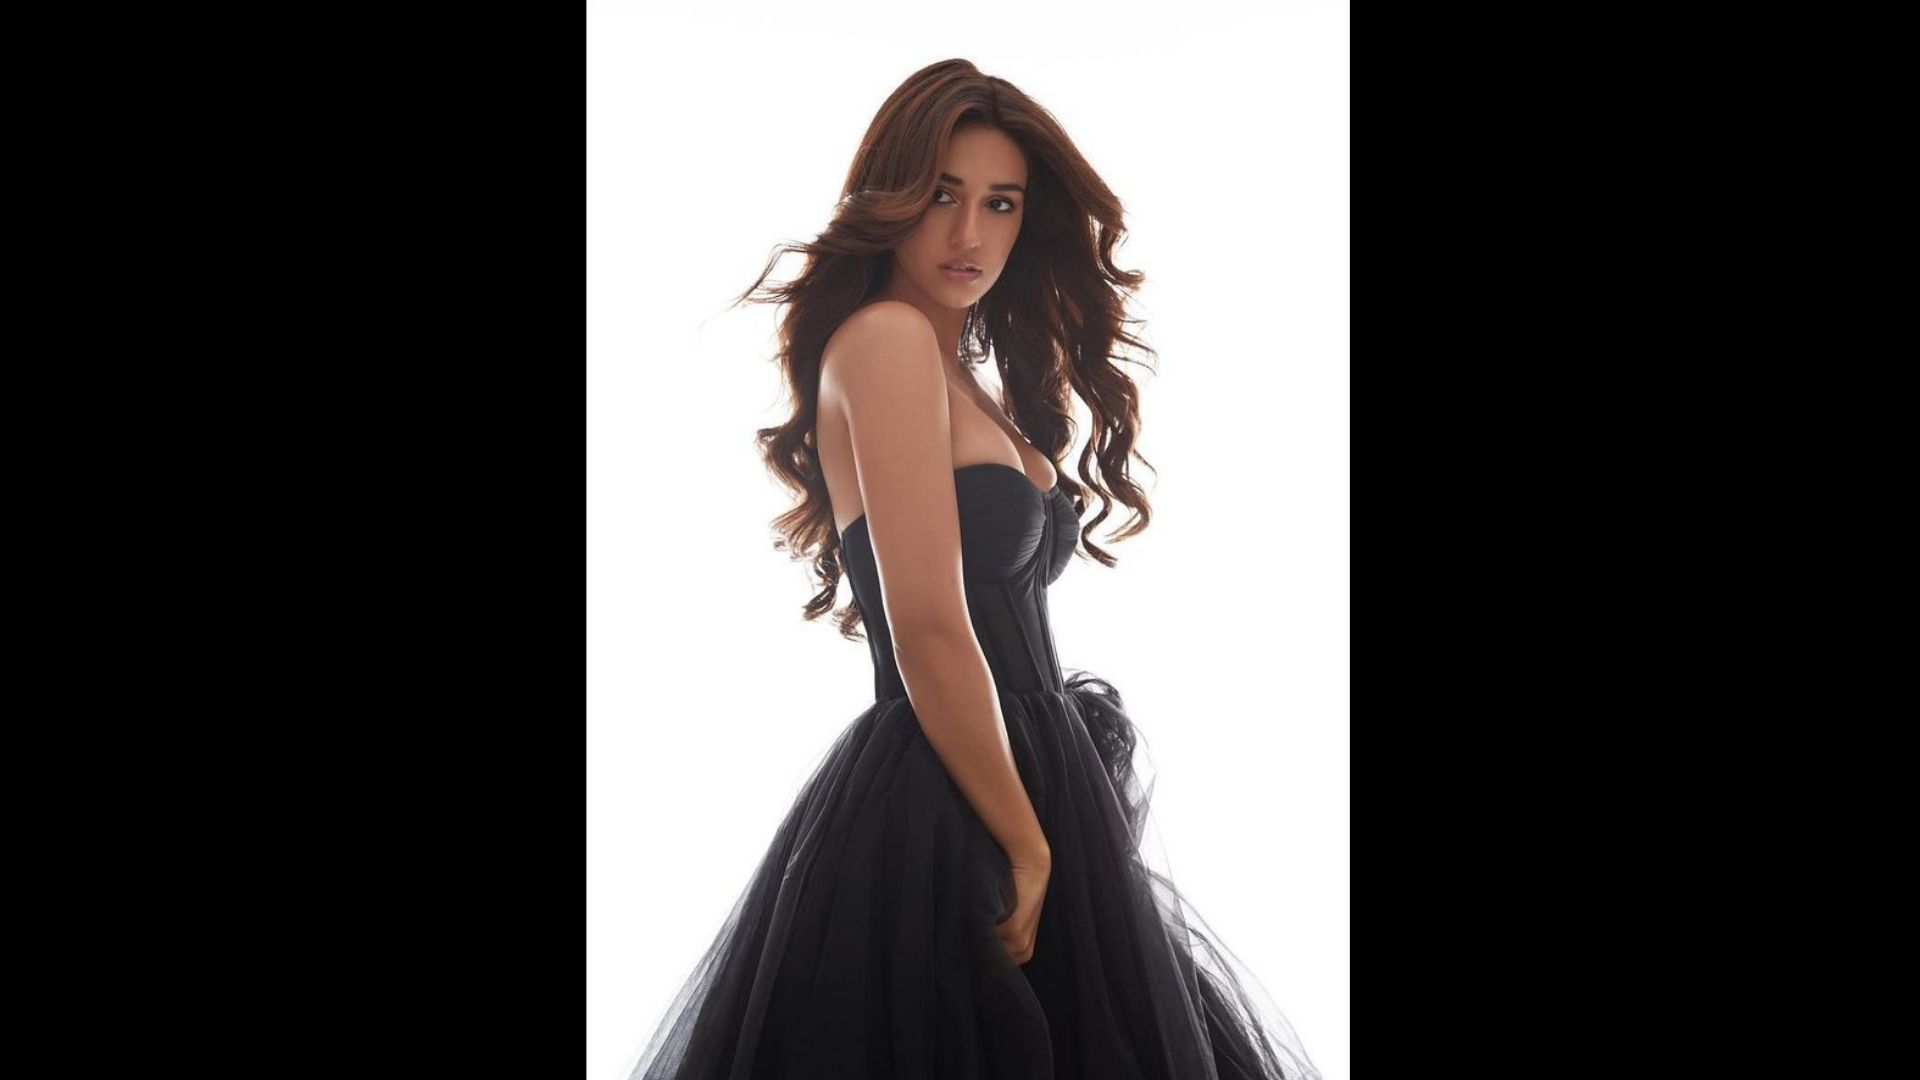 Disha Patani Shares BTS Video Of Her Recent Photoshoot; Her Black Strapless Gown Will Leave You Breathless